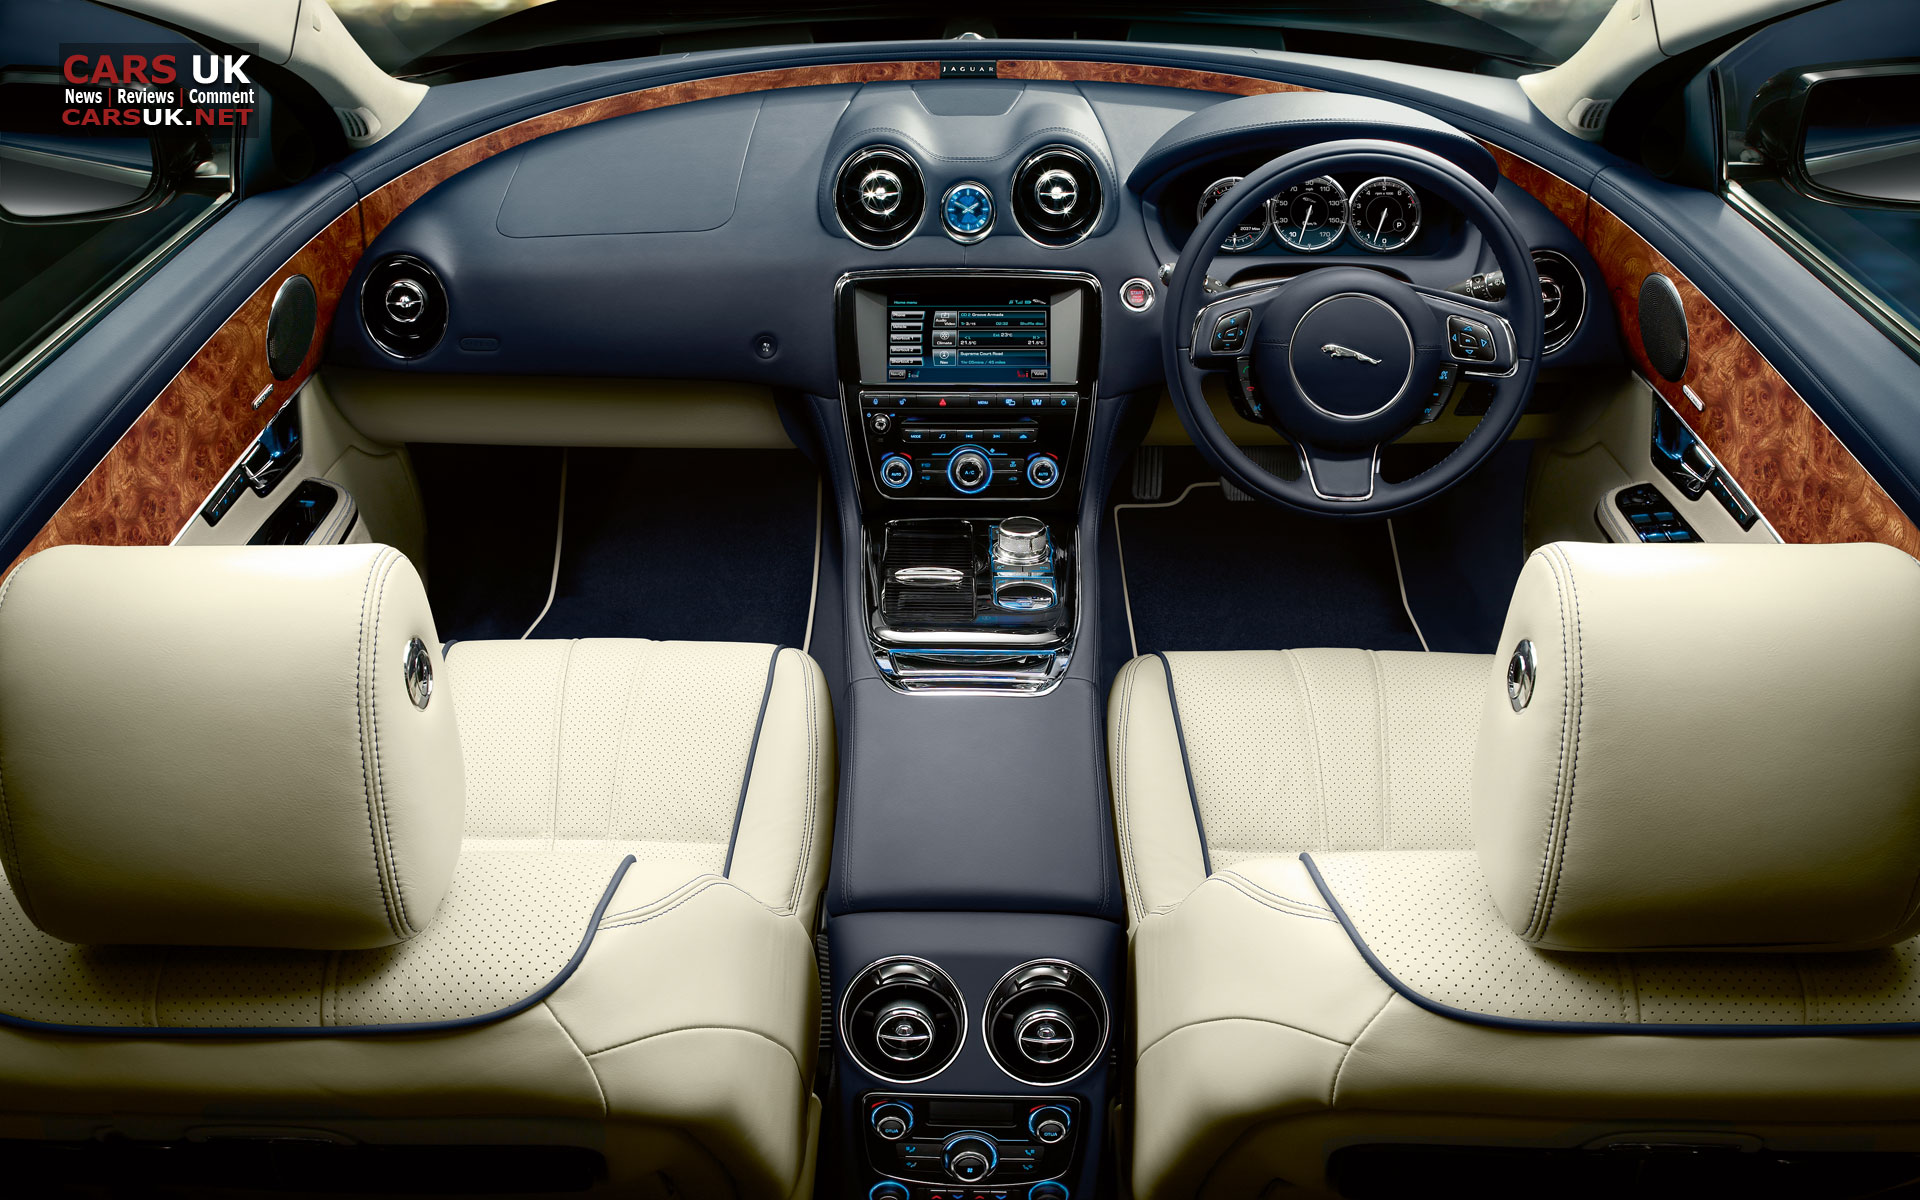 New Jaguar XJ 9 Jaguar Wallpaper Generation Opel Scenic Zafira Widescreen Wallpaper Gallery Free